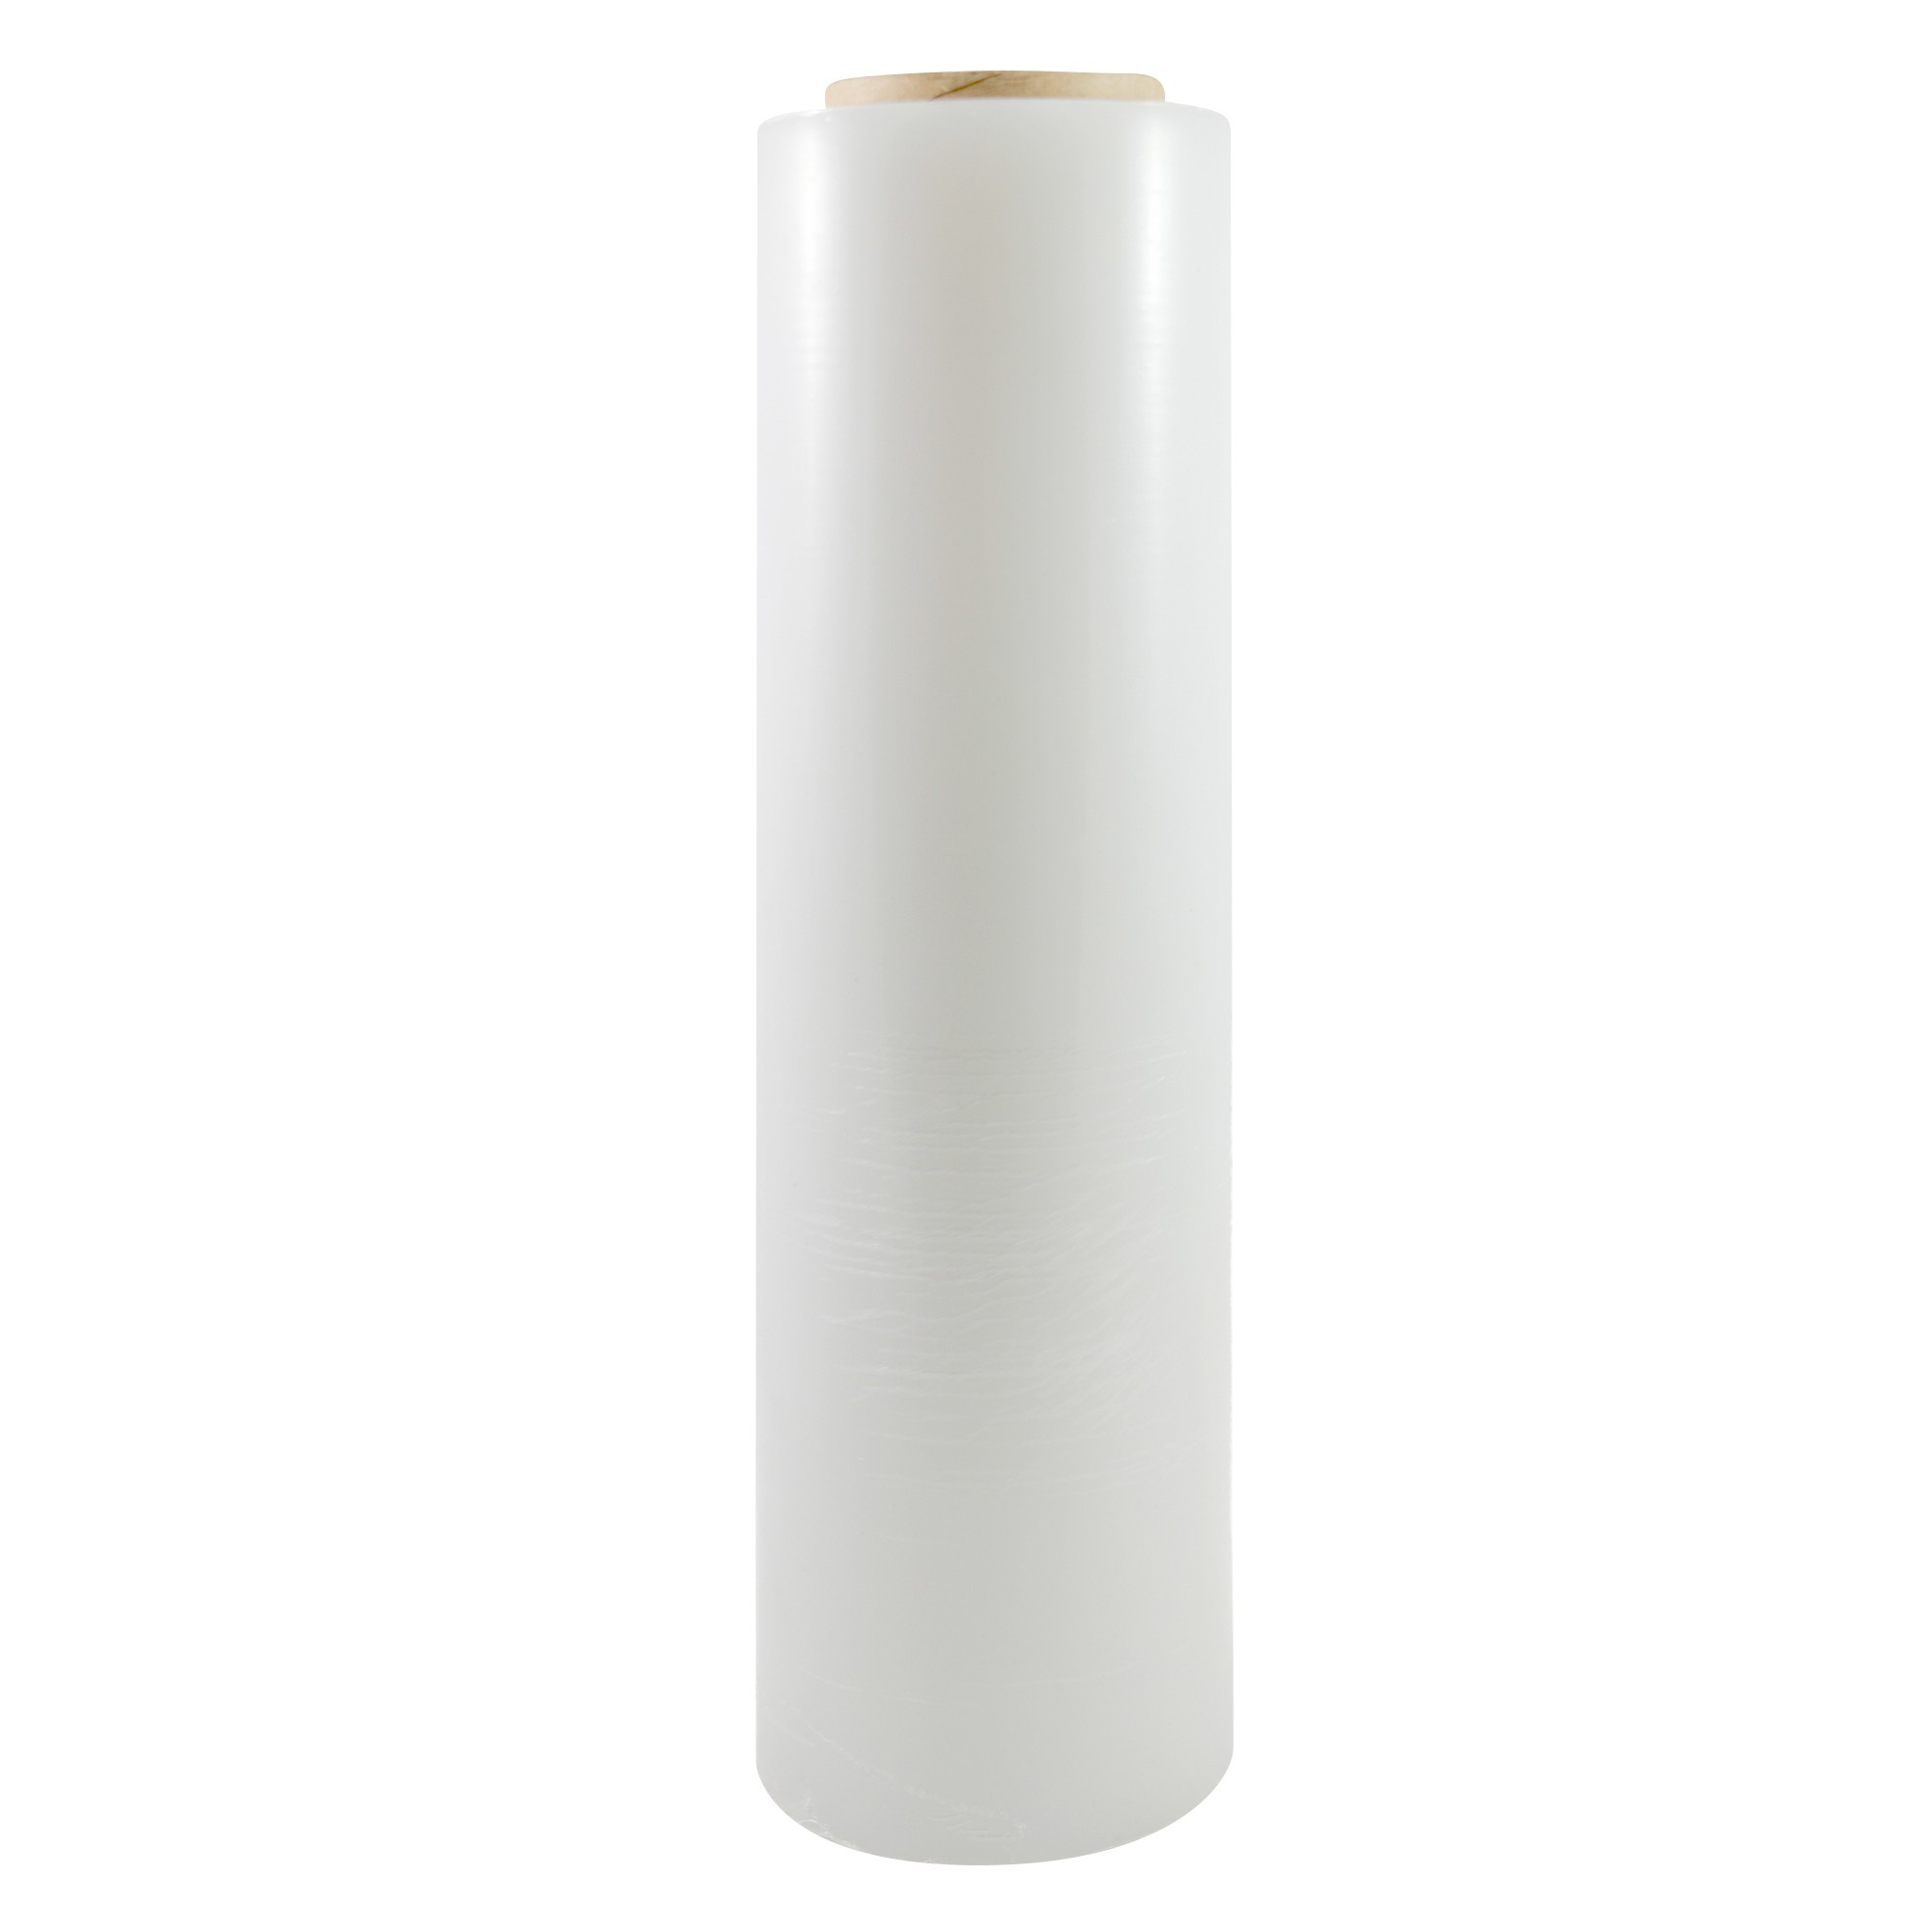 "TOTALPACK® 15"" x 1500' 40 Gauge, 4 Rolls. Gauge Cast Stretch Clear Film"